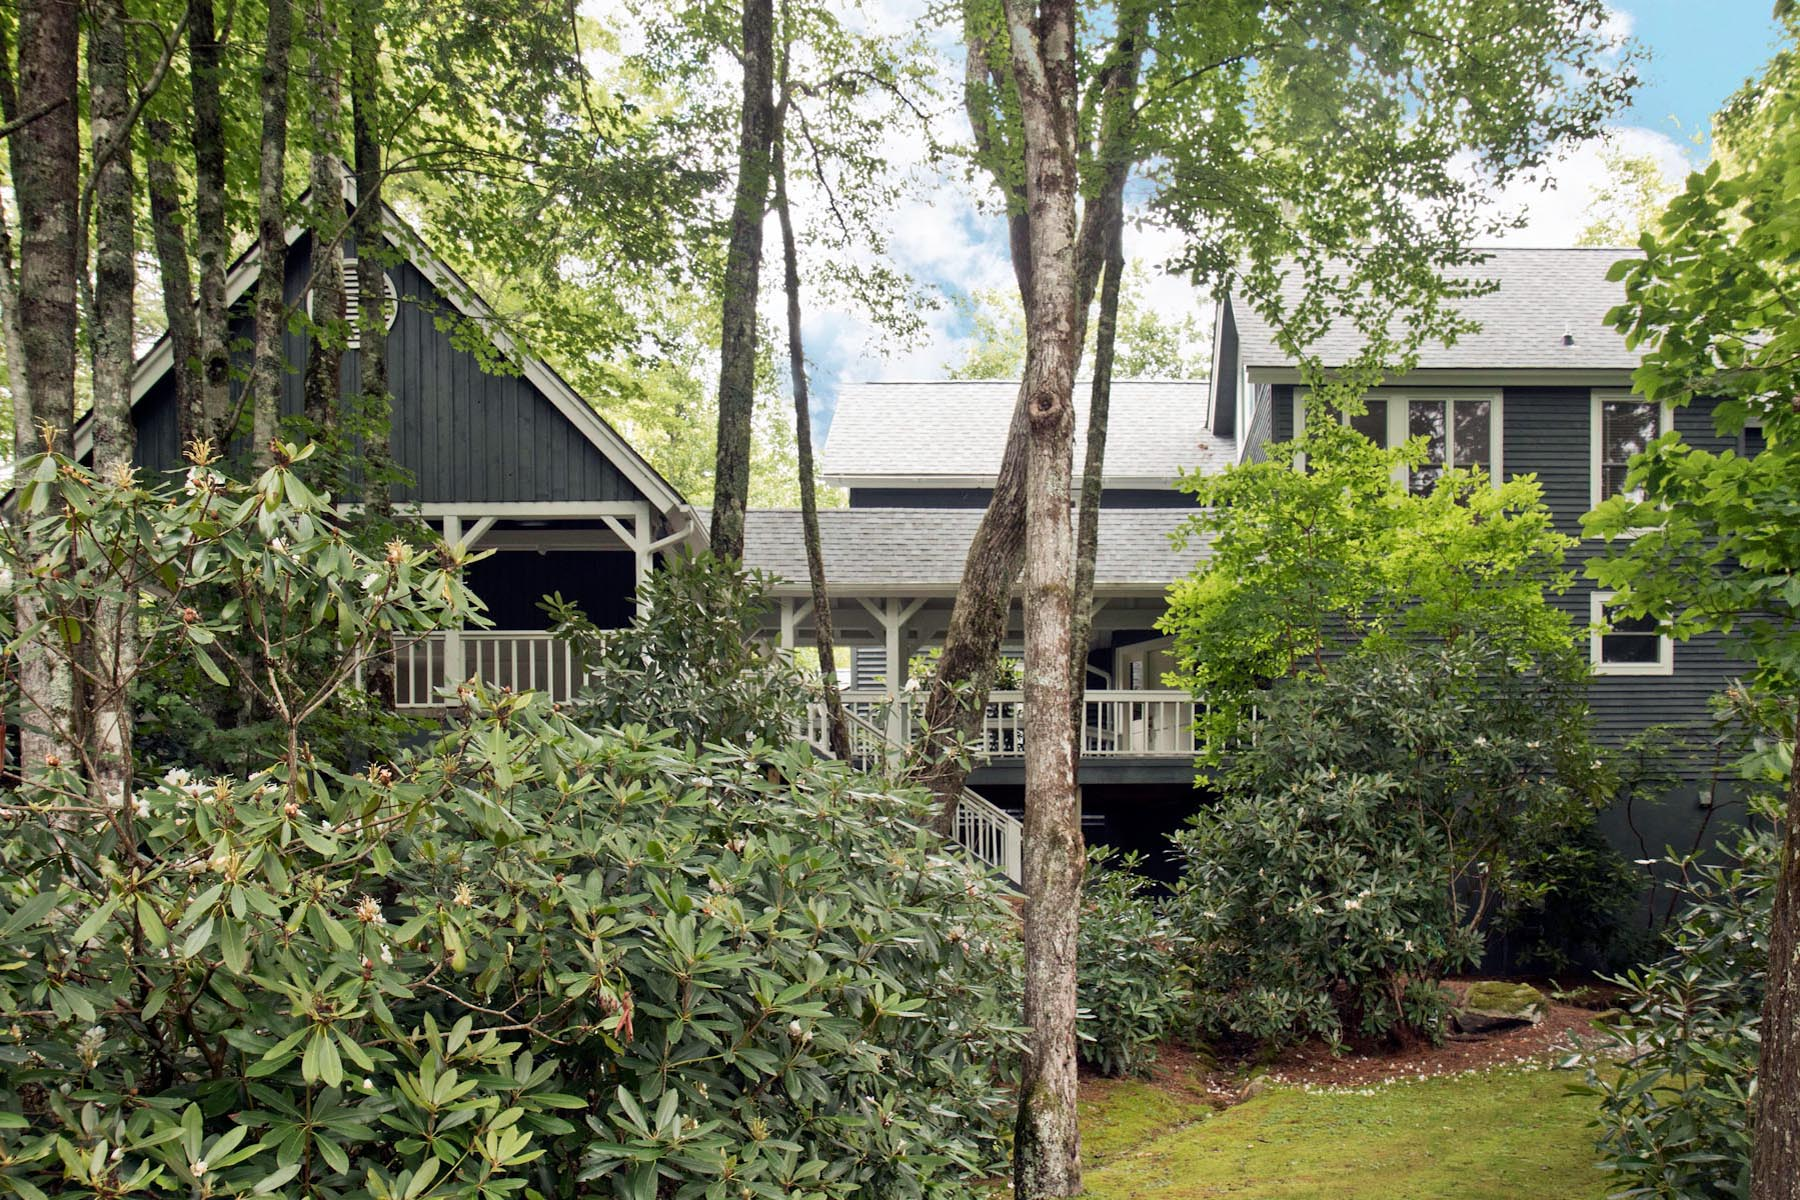 Single Family Home for Sale at 121 Crescent Trail Highlands, North Carolina, 28741 United States